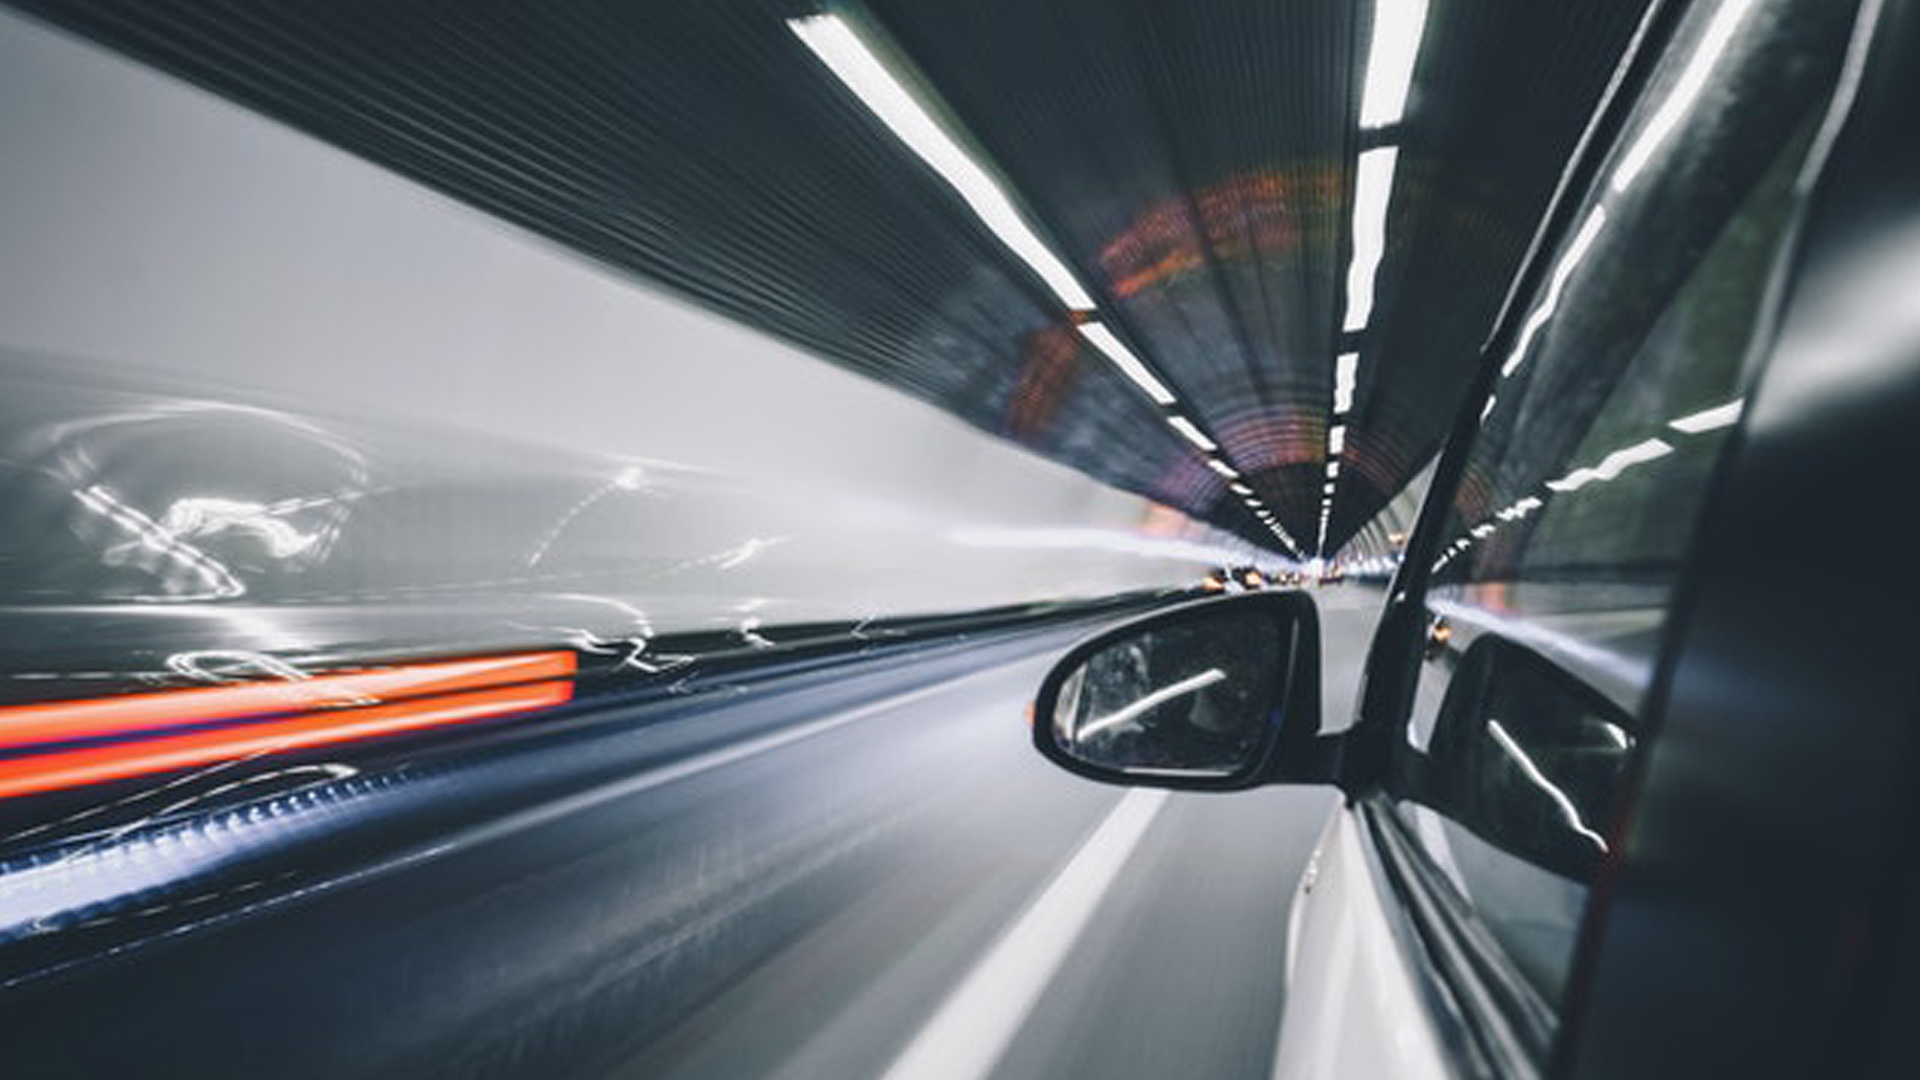 driverless-tunnel-image